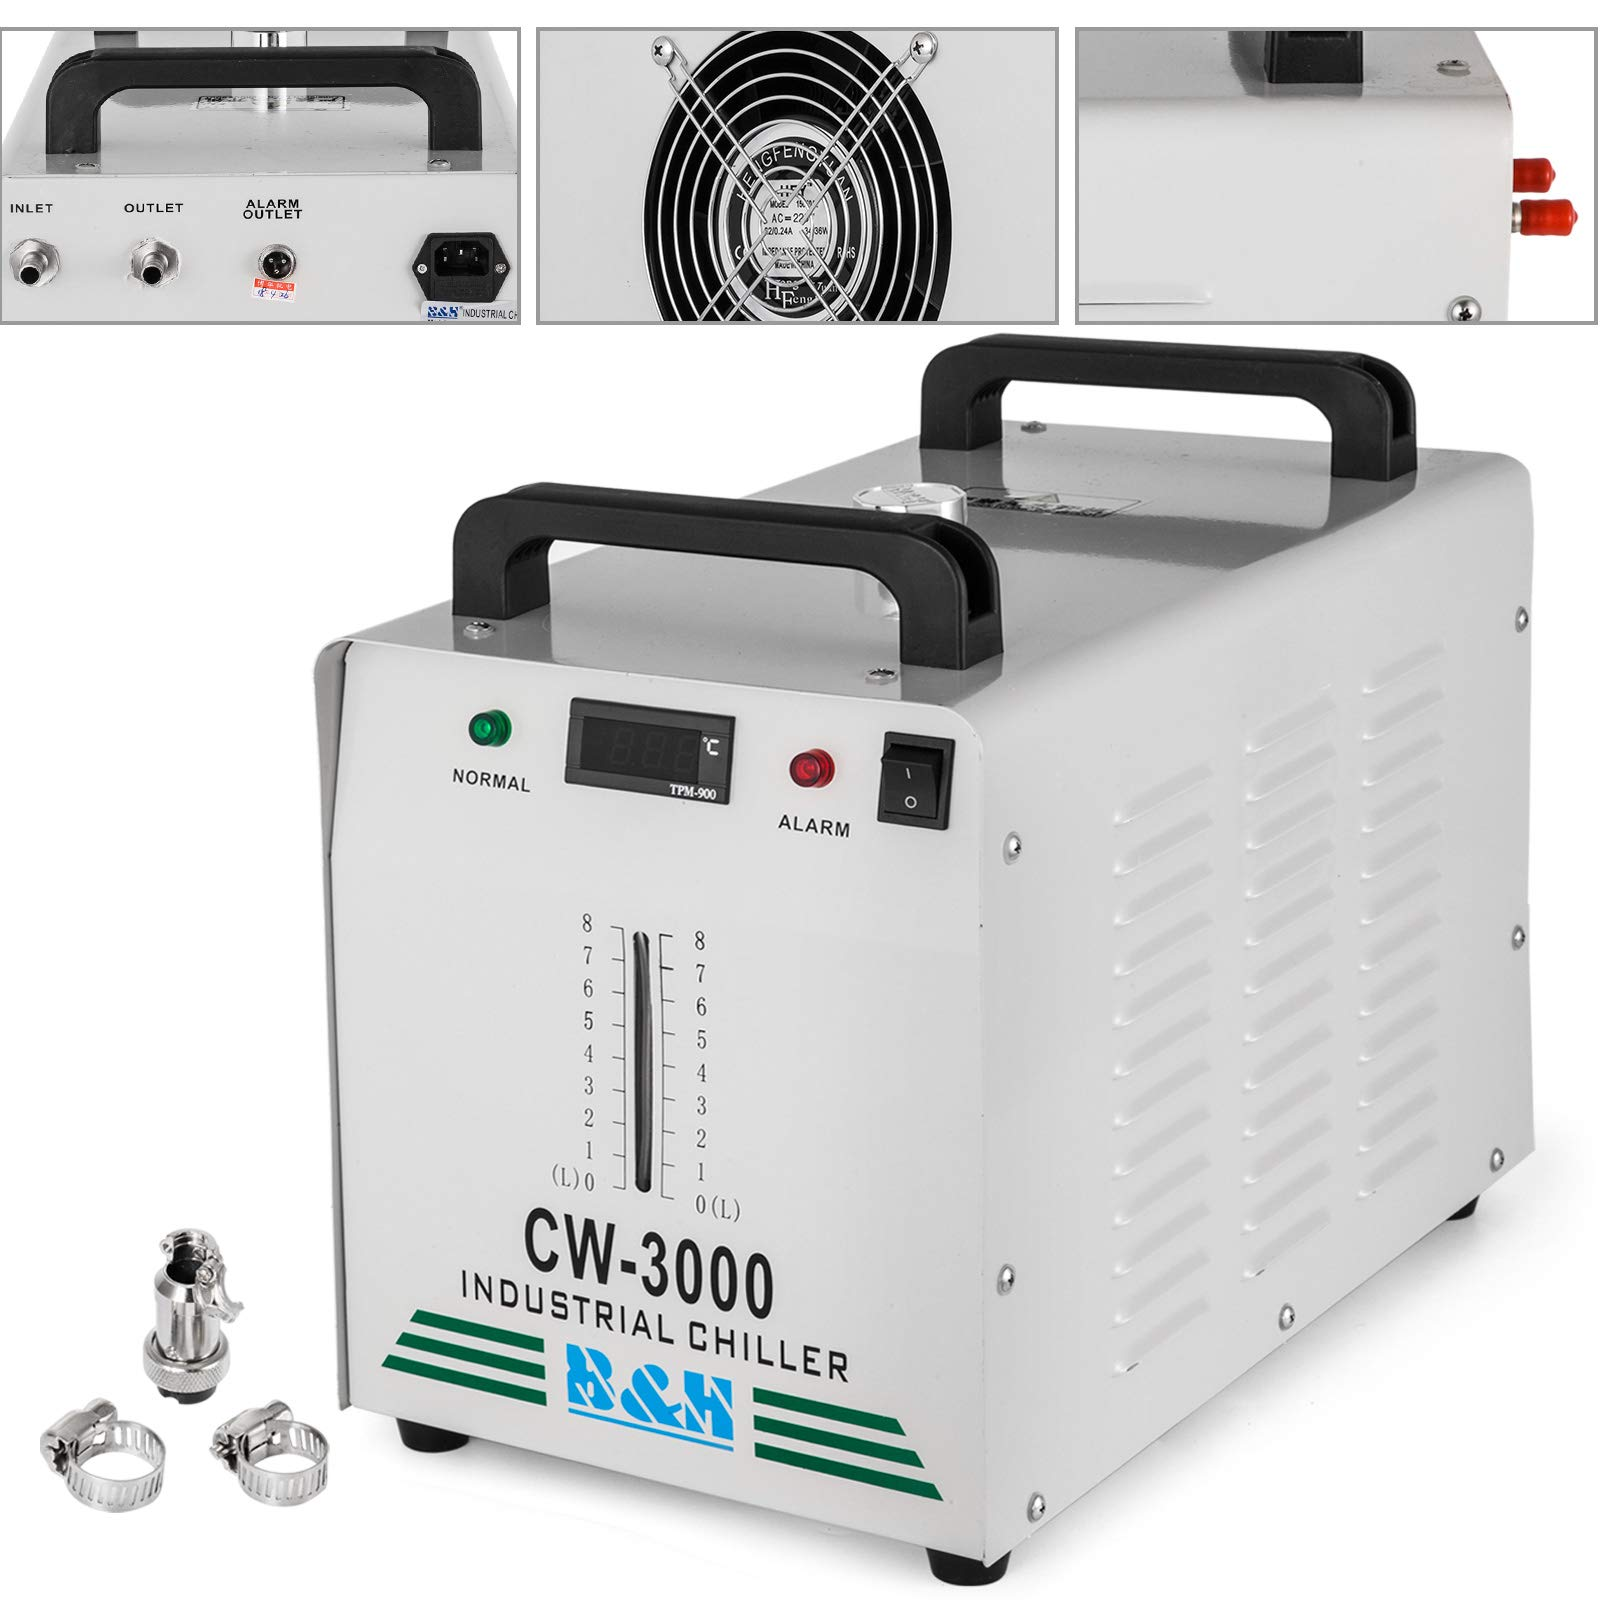 Mophorn Water Chiller 9L Capacity Industrial Water Chiller CW-3000DG Thermolysis Type Industrial Water Cooling Chiller for 60W 80W Laser Engraving Machine (CW-3000DG 9L) by Mophorn